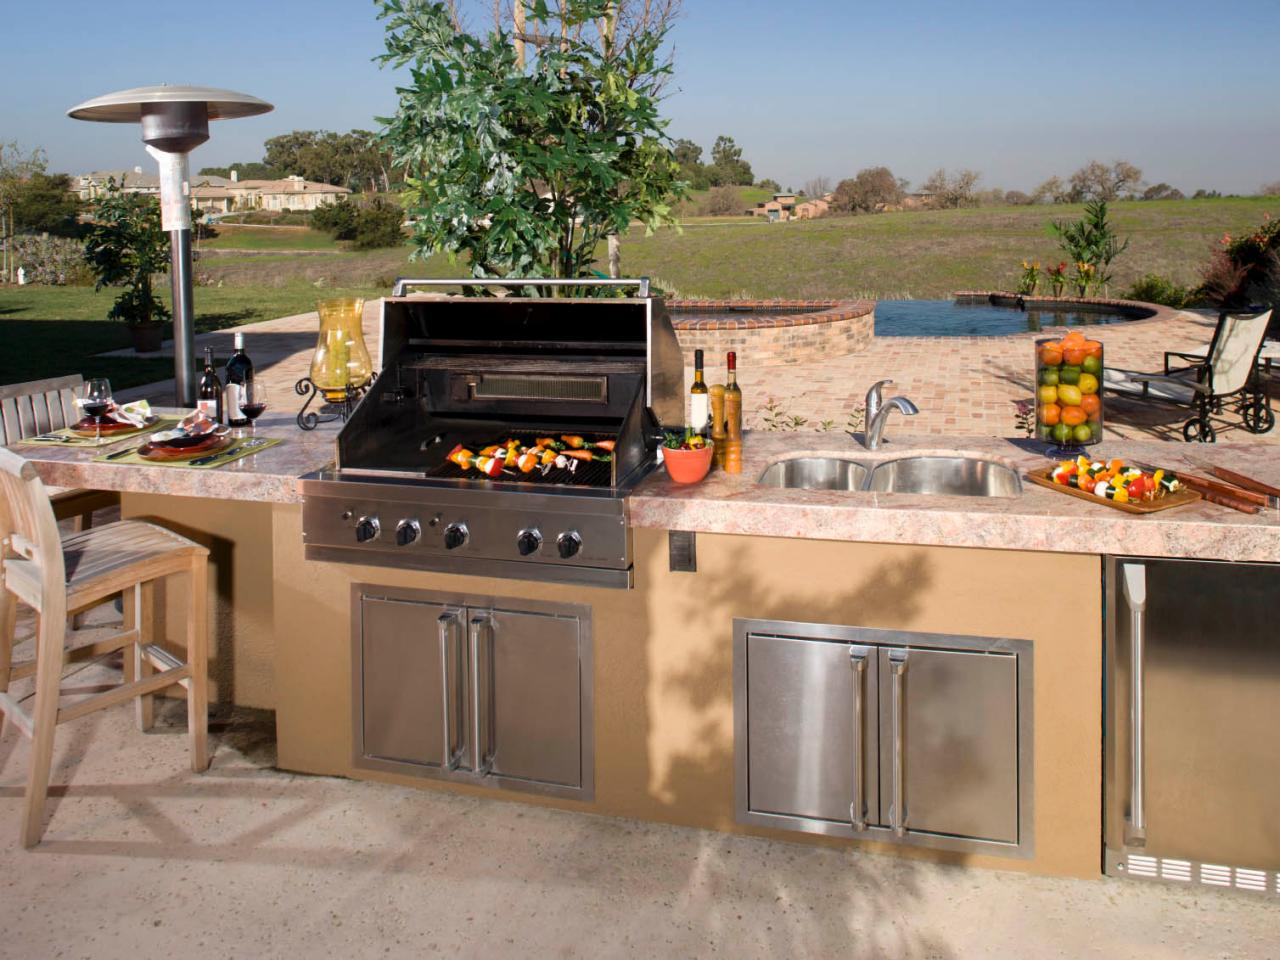 outdoor kitchen design ideas - Outdoor Kitchen Ideas Designs